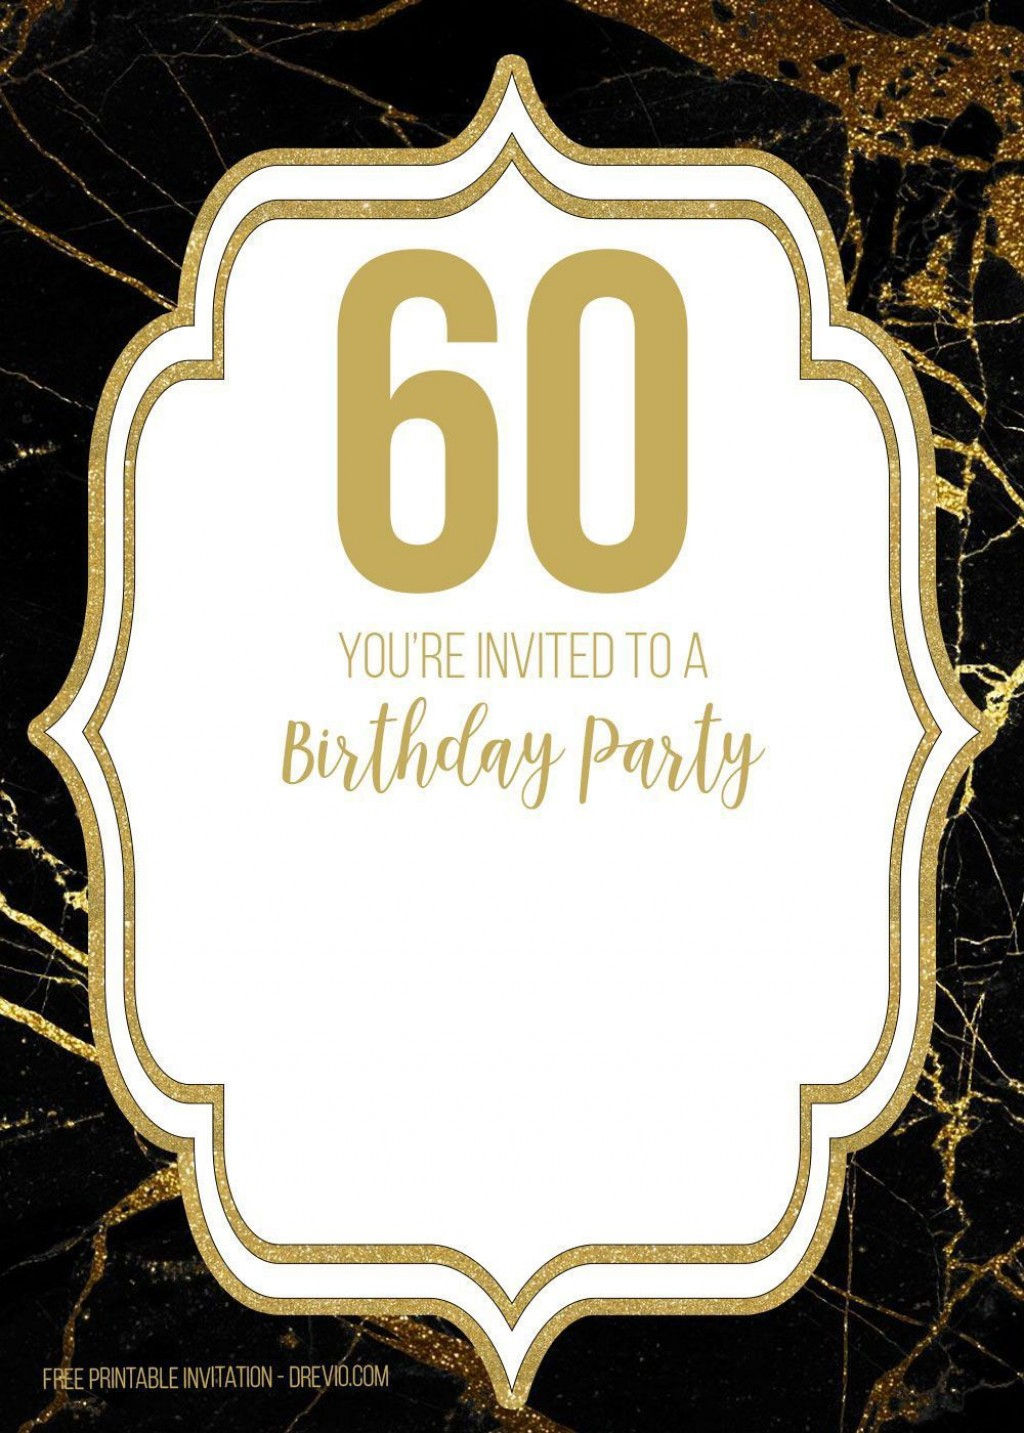 002 Surprising 60 Birthday Invite Template High Definition  Templates 60th Printable FreeLarge